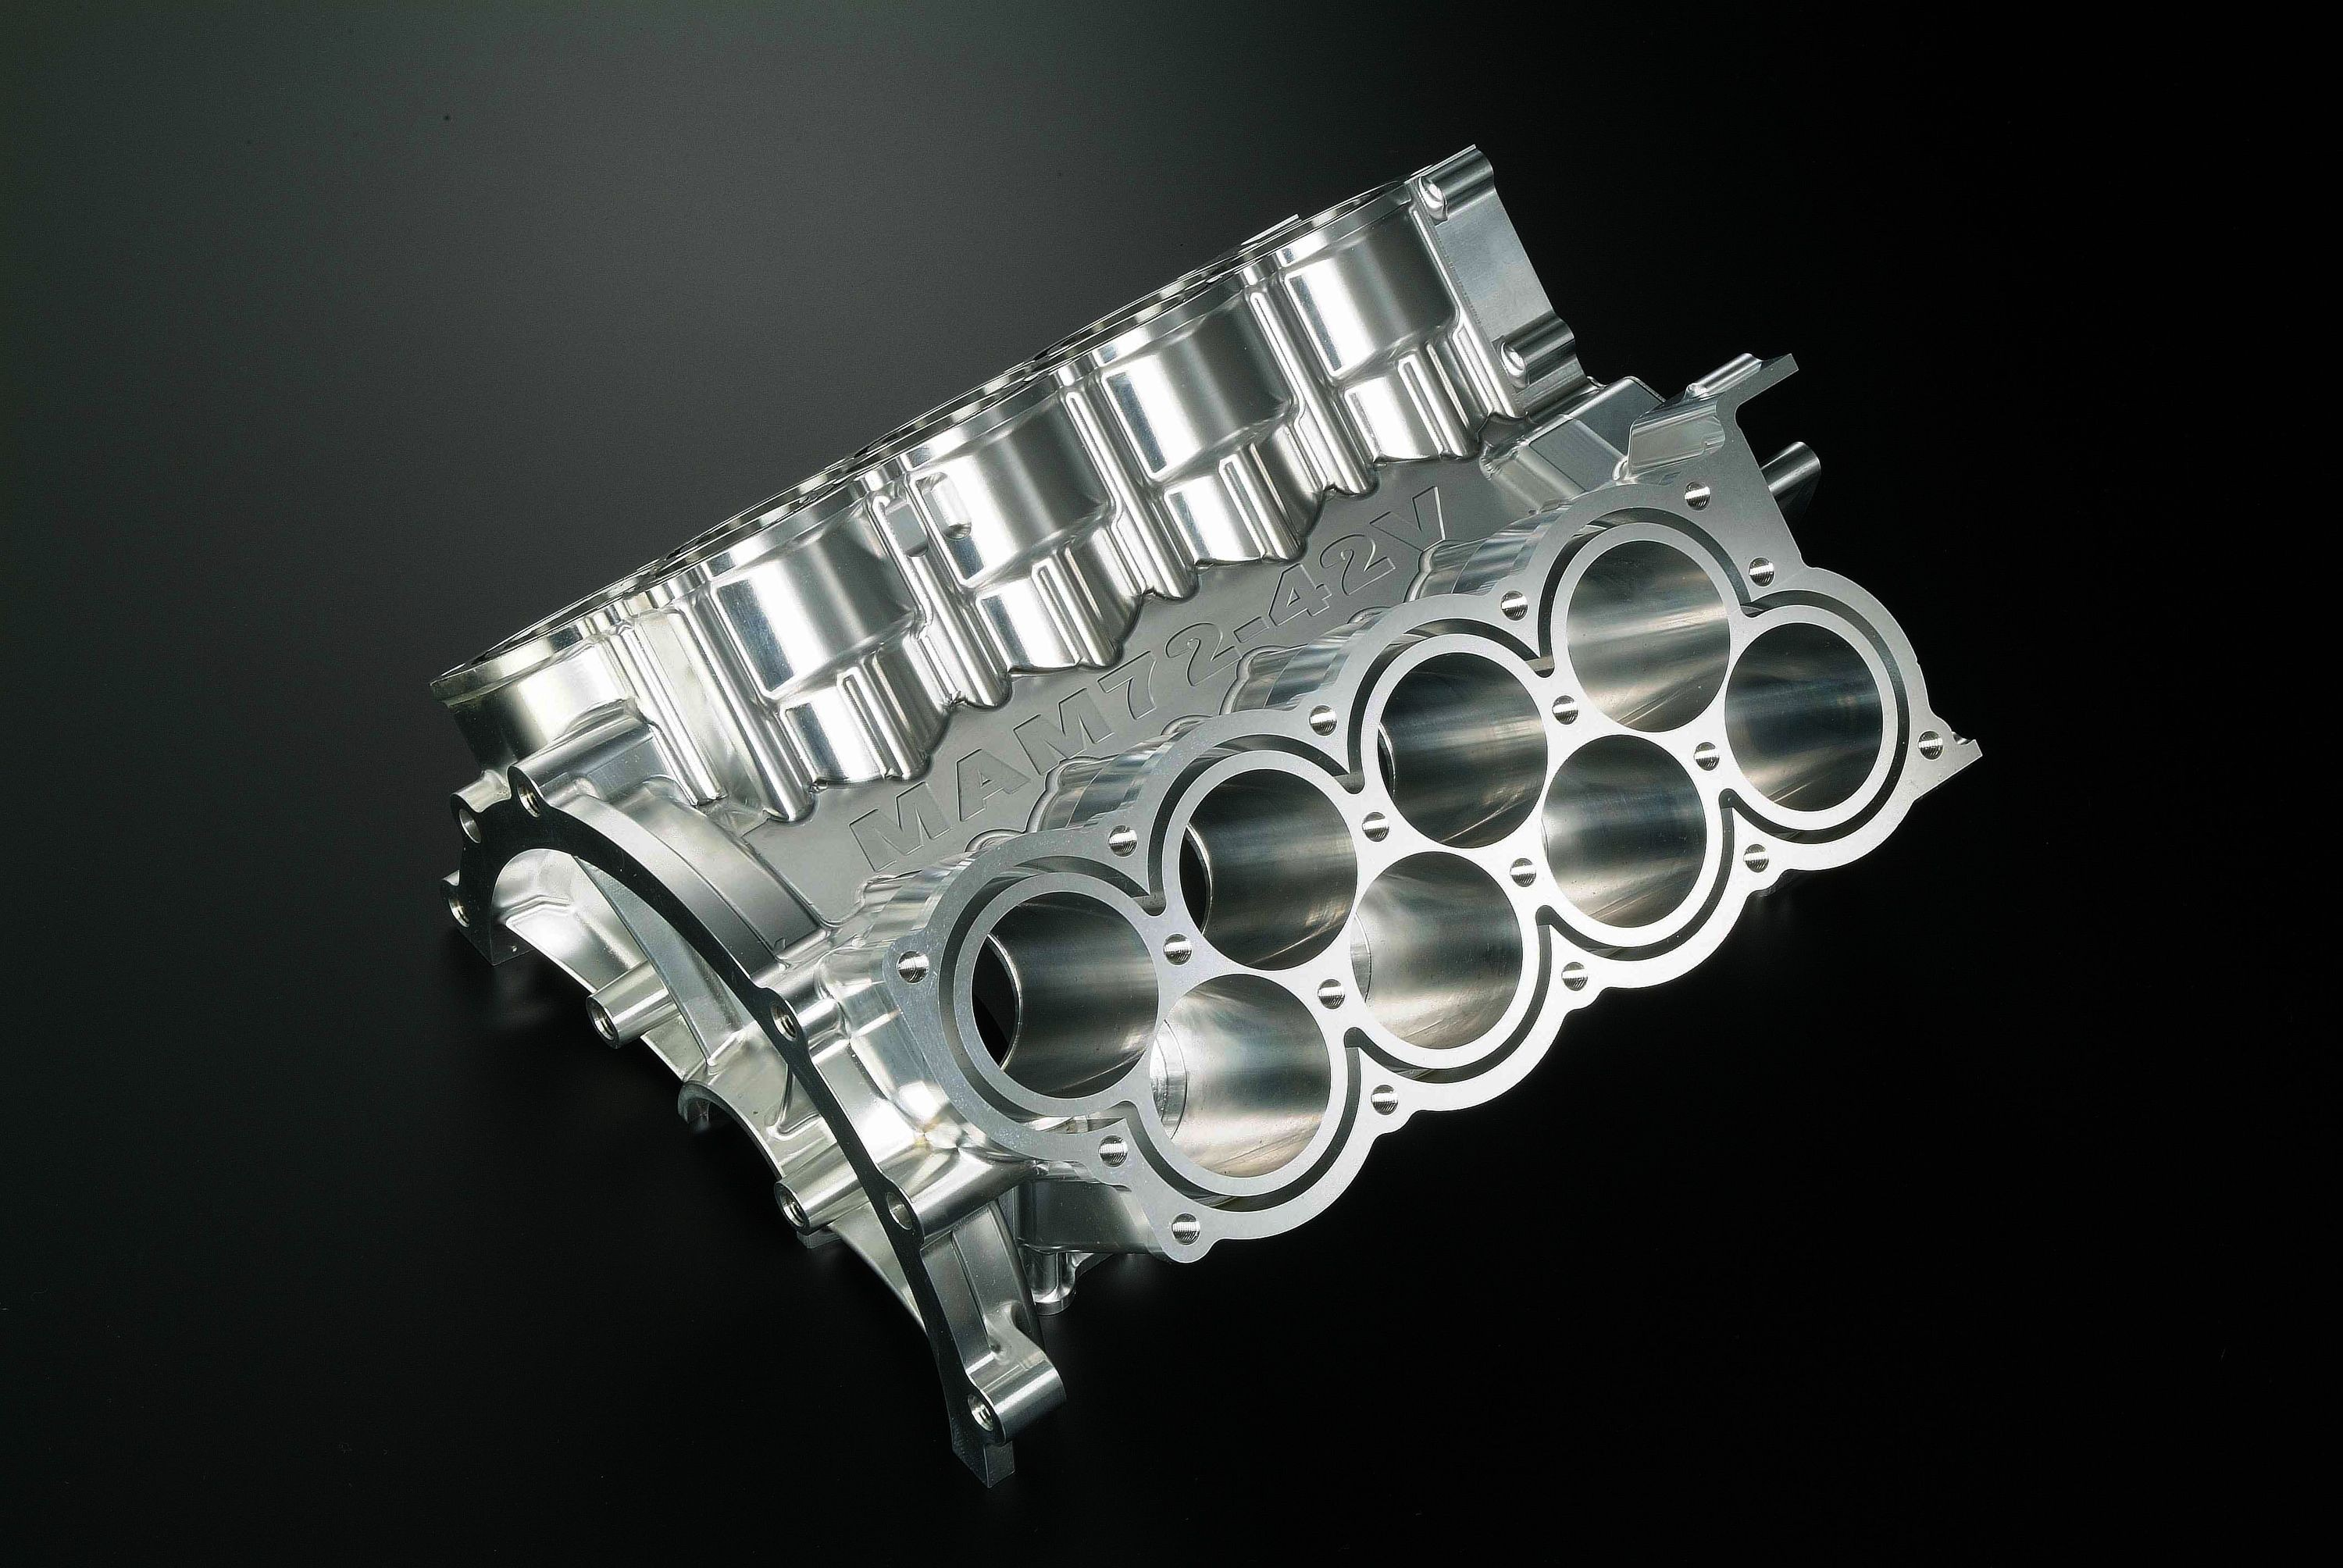 W16 Engine Diagram This W16 Engine Block Was Machined From solid Billet On A 5 Axis 24 Of W16 Engine Diagram